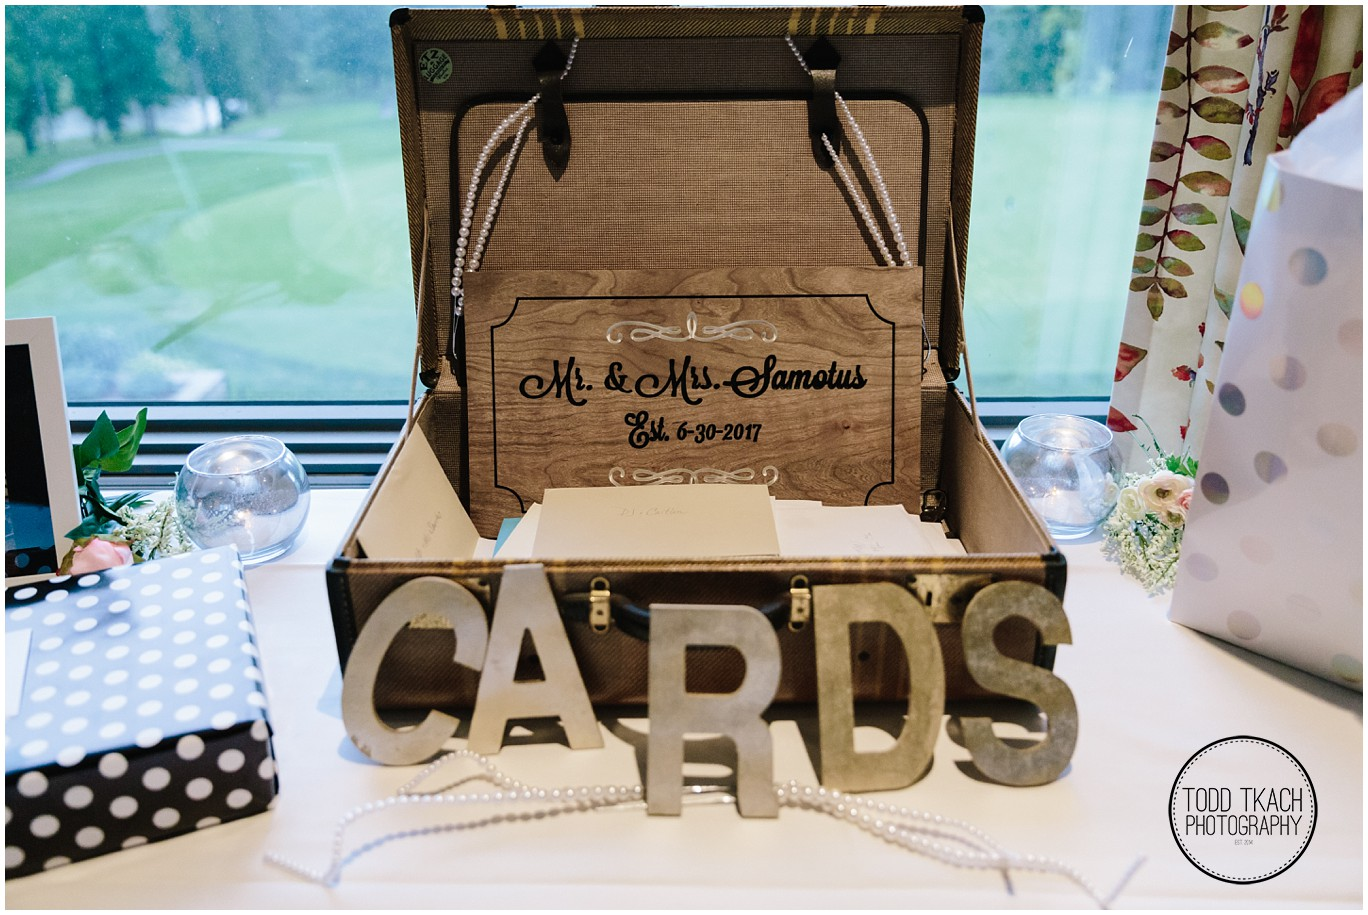 Phil & Caitlin - Seven Oaks - Mr & Mrs Samotus Card Box